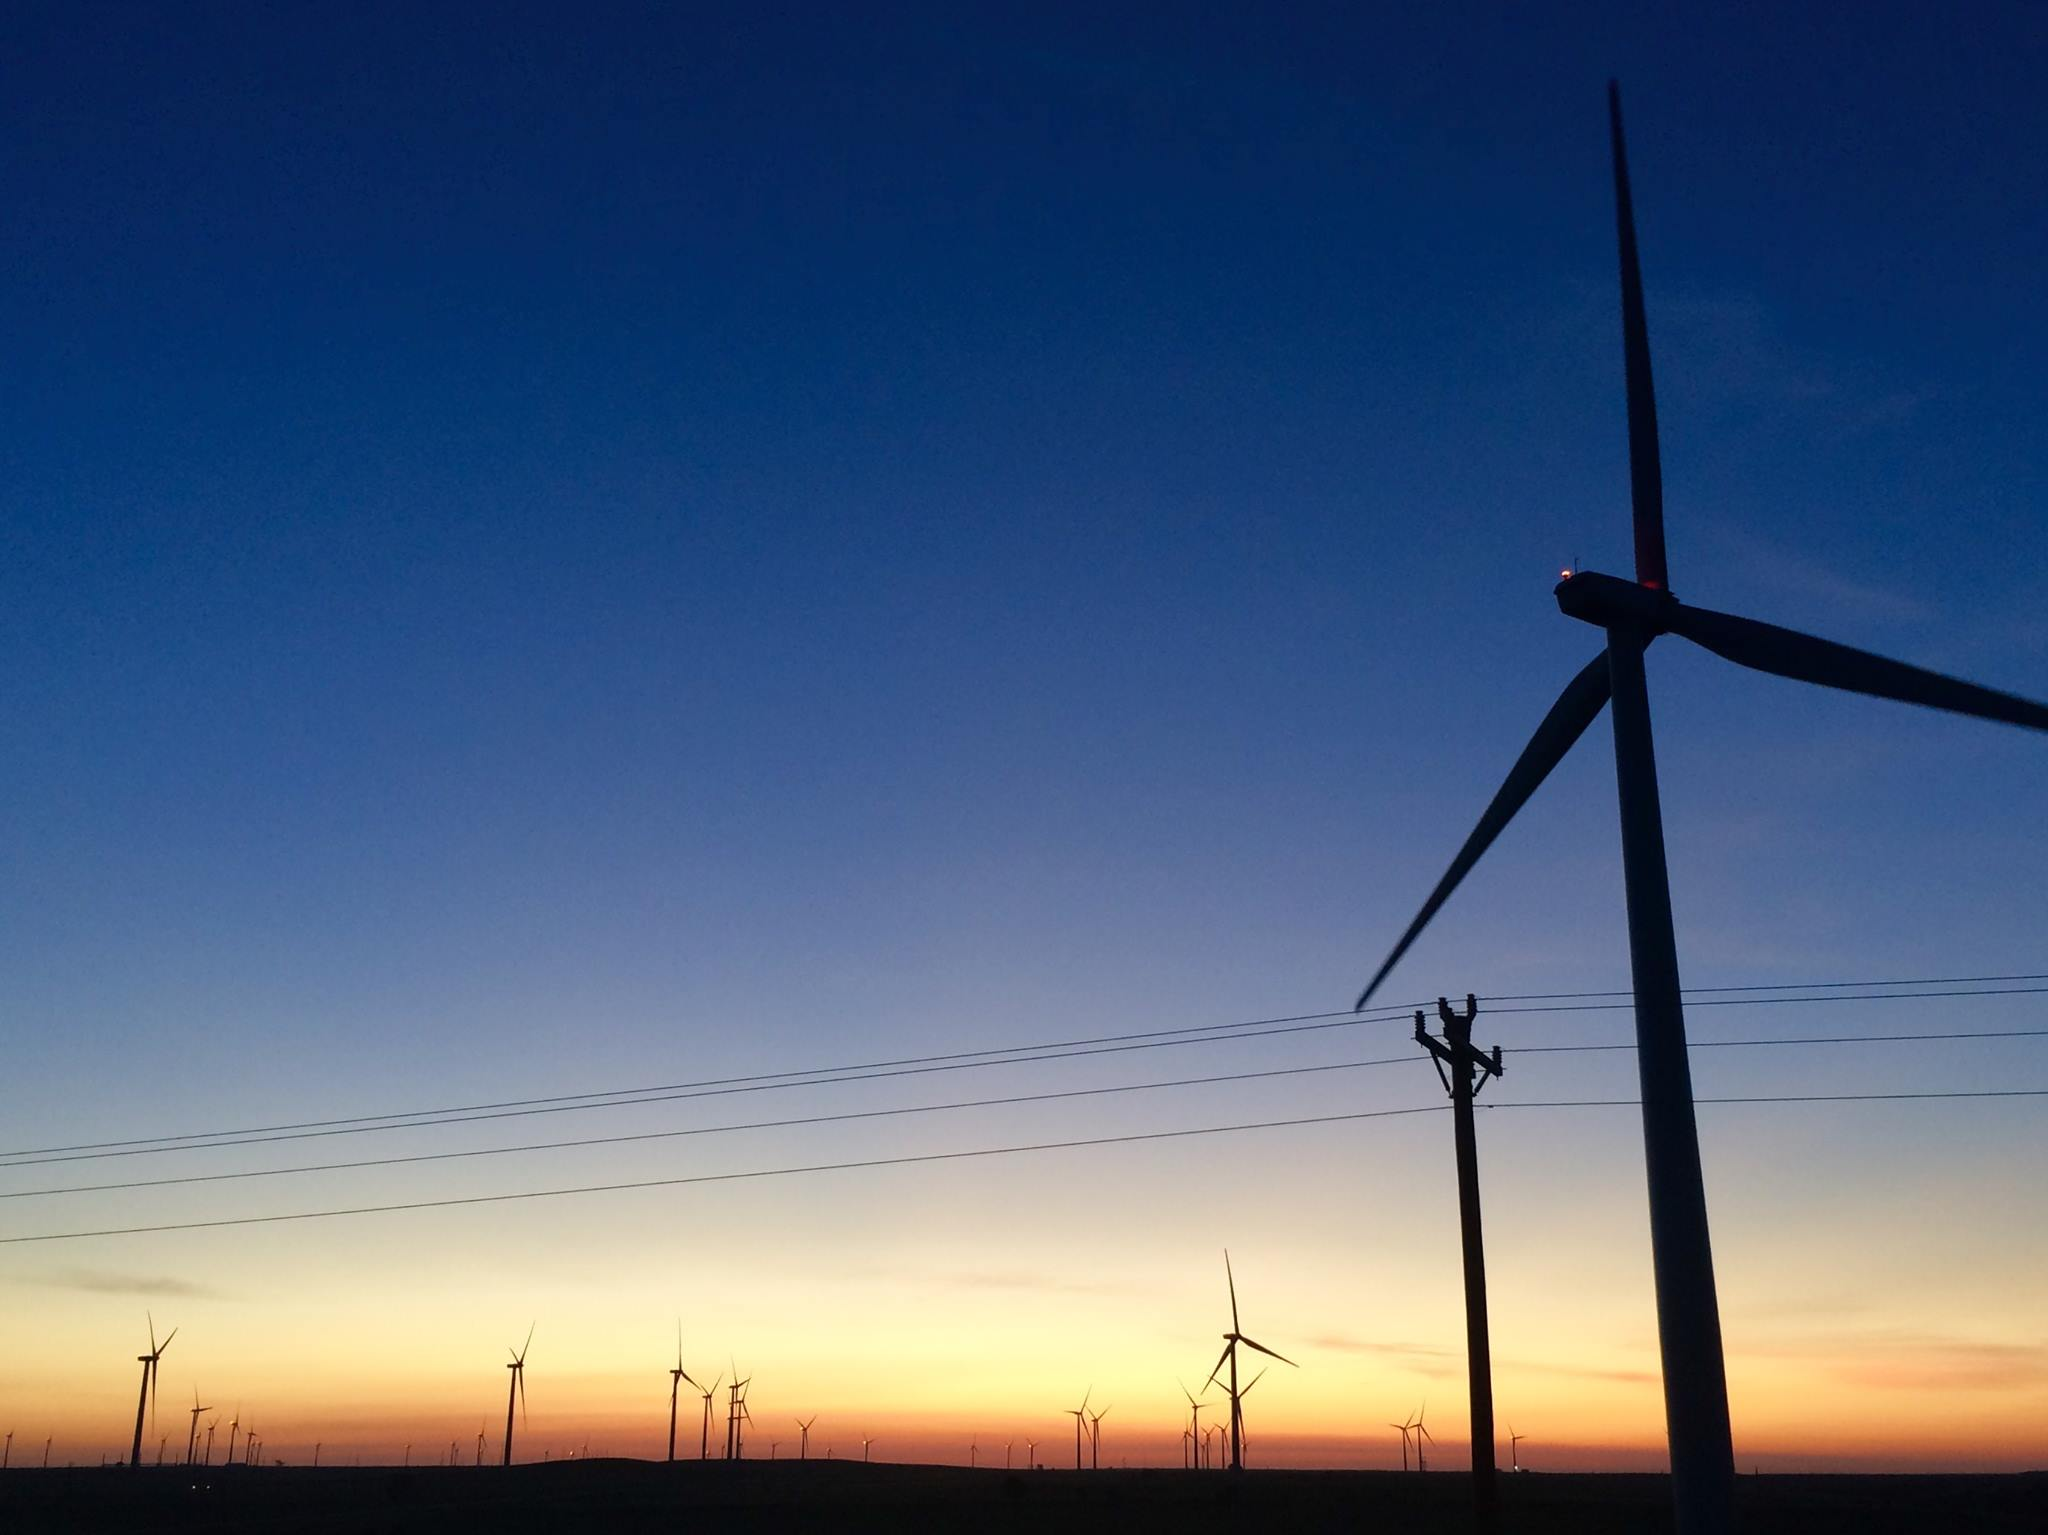 District Court judge denies Osage Nation motion to challenge County wind energy ordinance